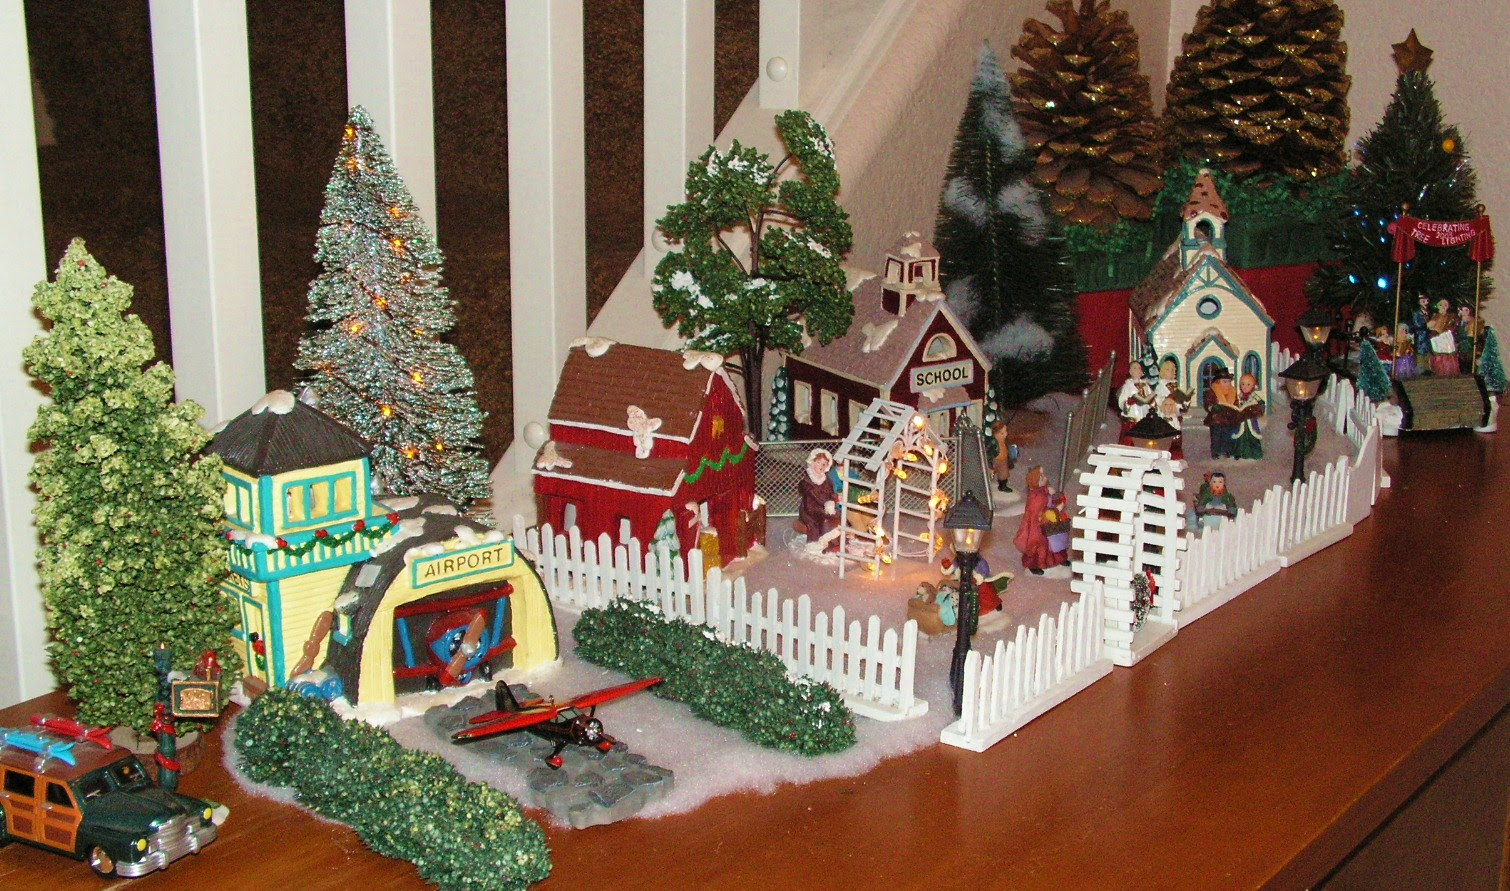 decoration village Christmas Decoration Village | Christmas Ideas decoration village